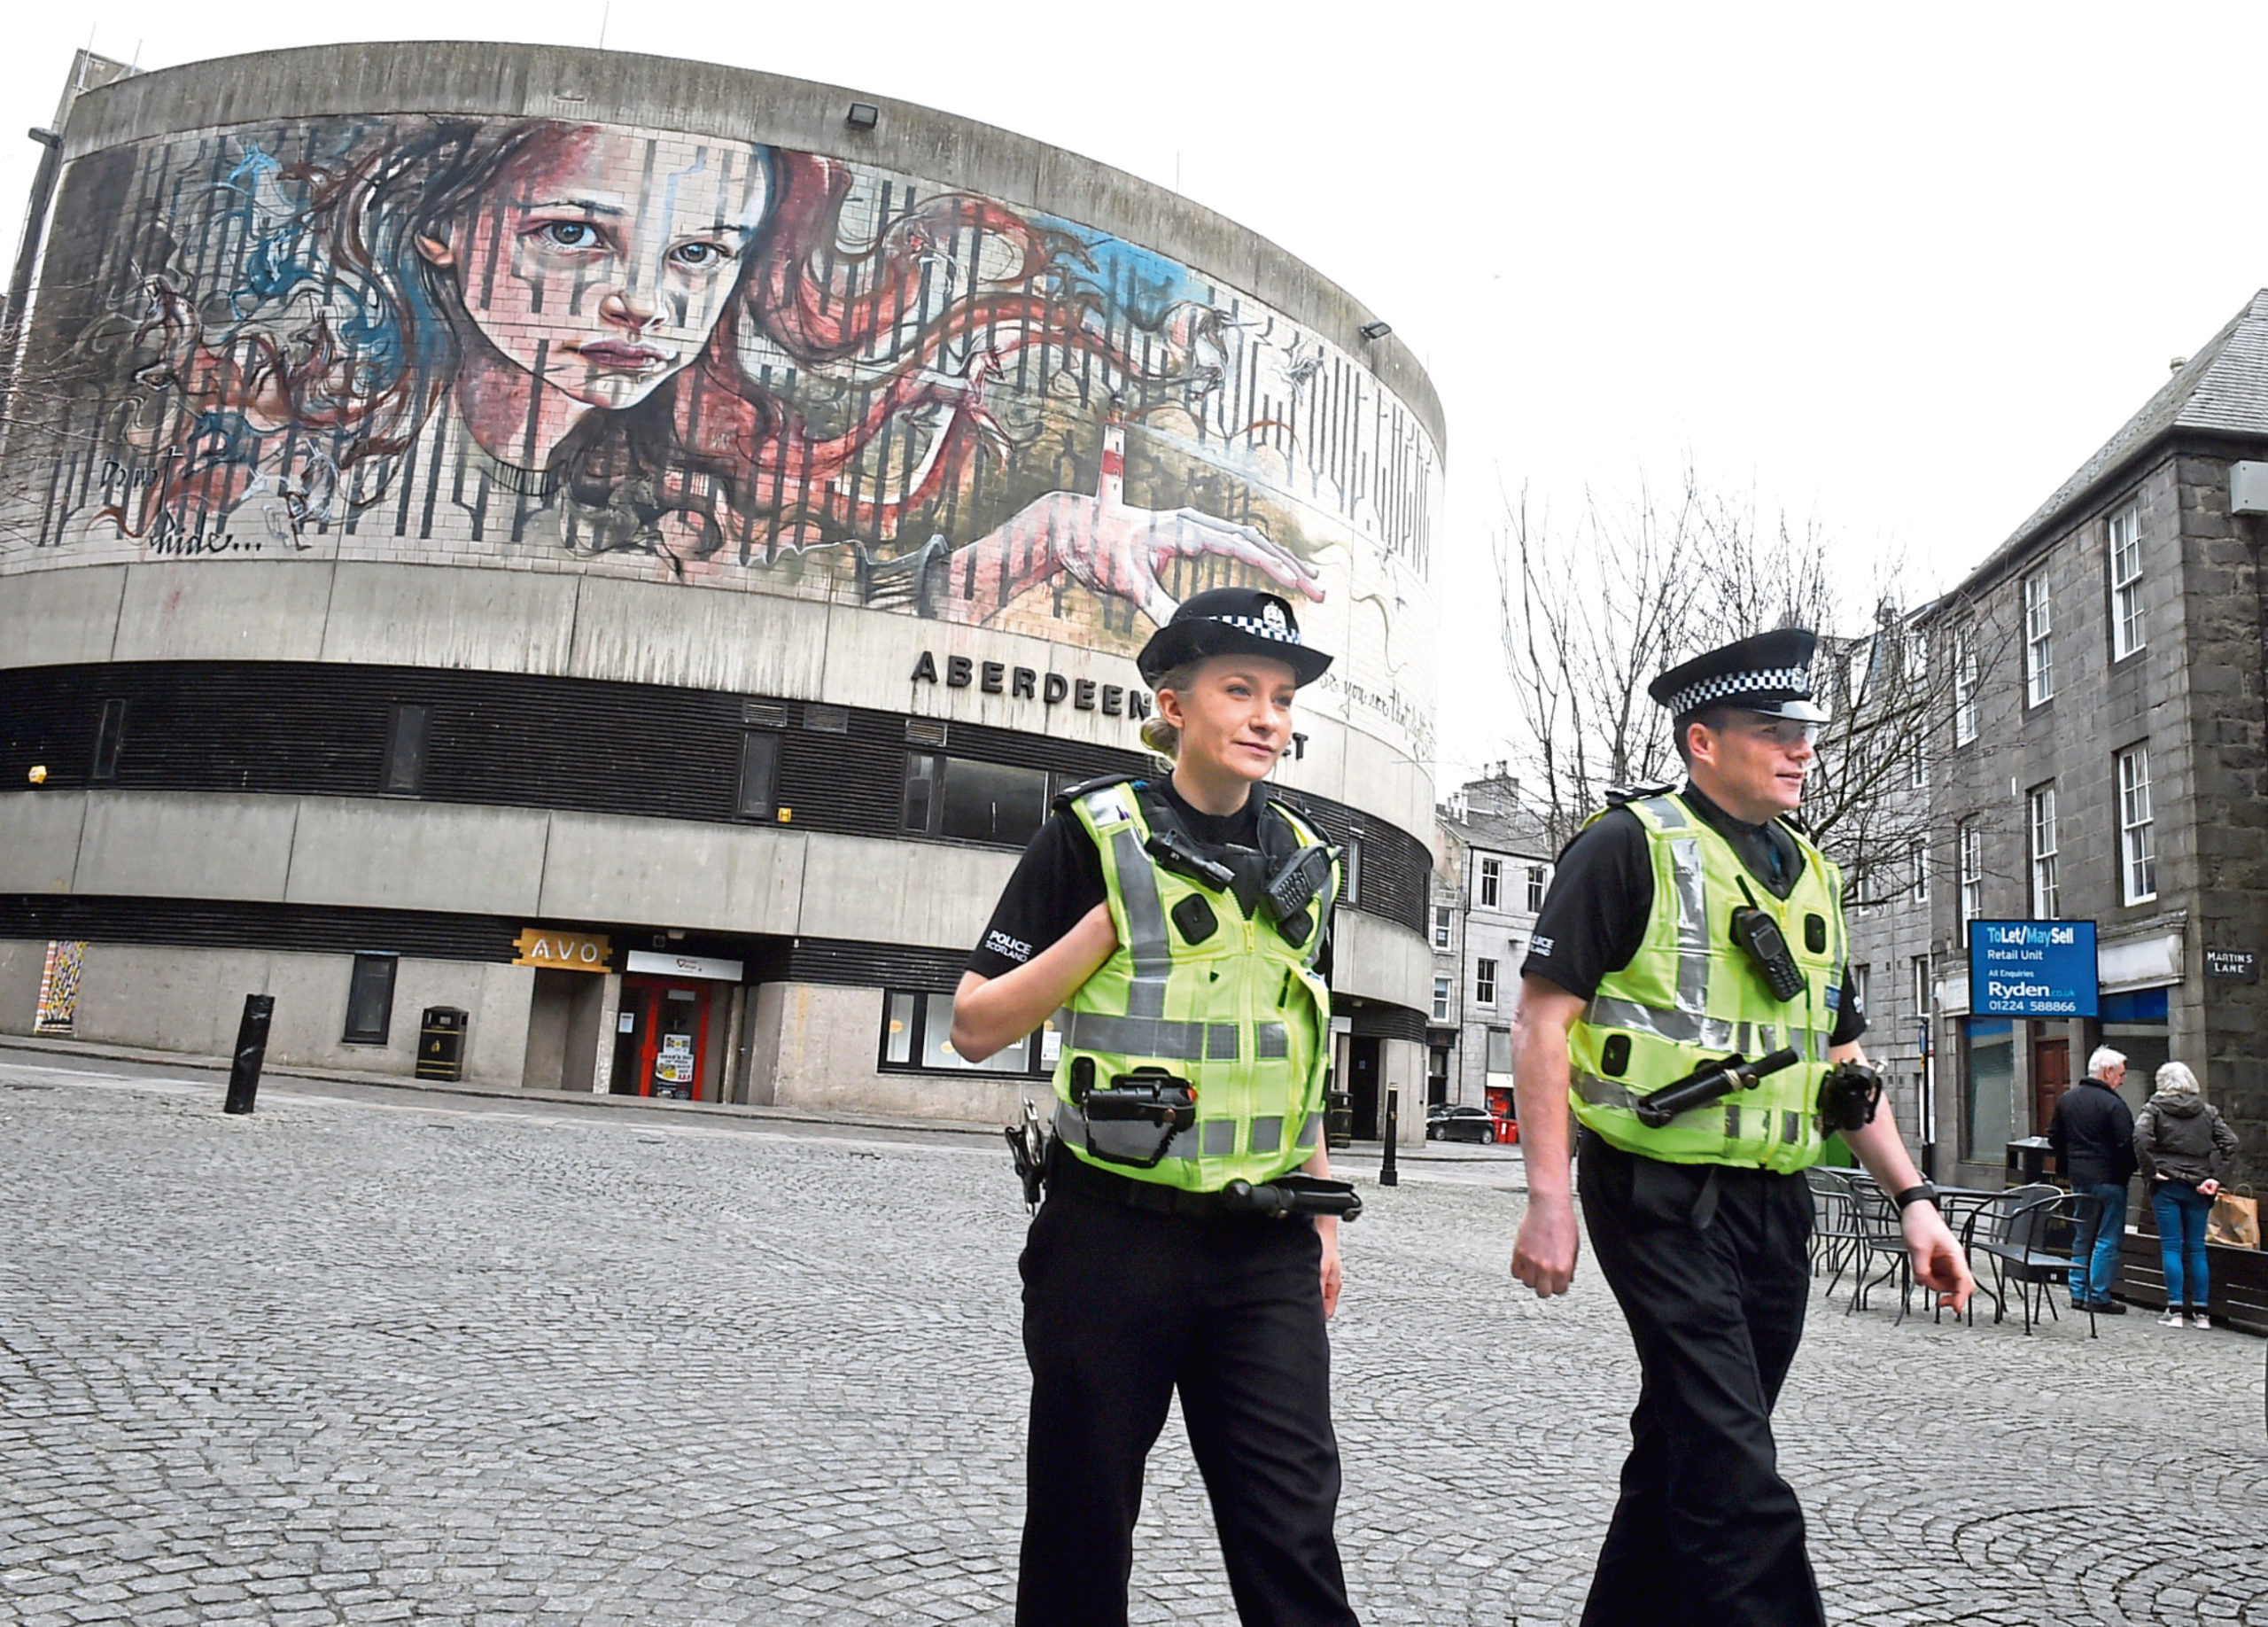 Officers are maintaining a highly visible presence in Aberdeen